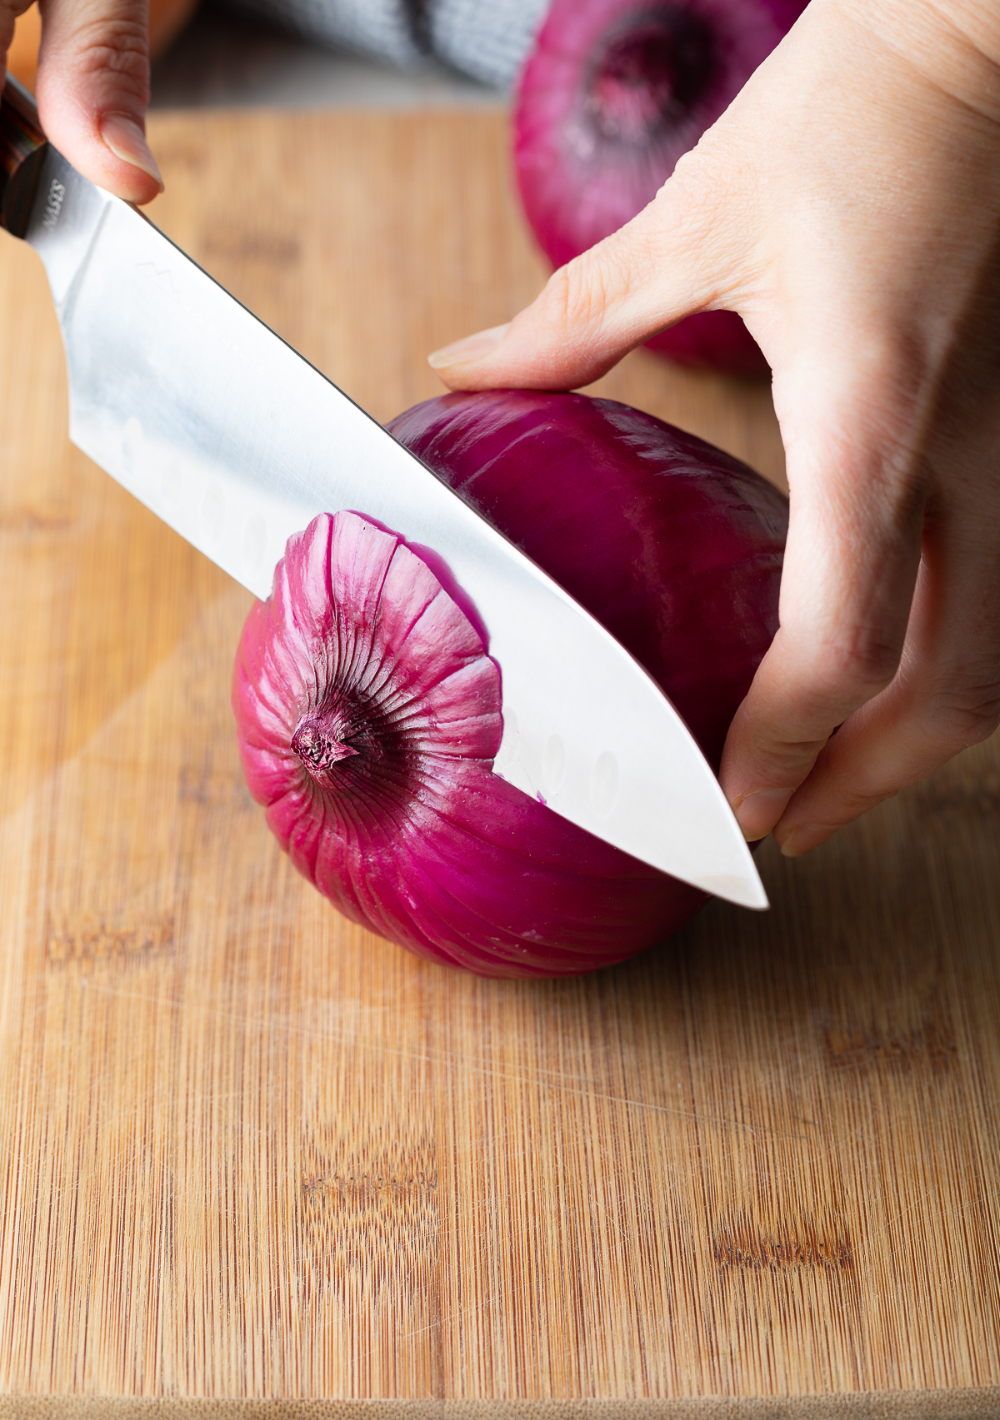 Tutorial On How To Finely Chop An Onion Neatly Efficiently And With Few Tears A Few Tips Accompanied With A Step B Onion Recipes Finely Chopped Onion Onion